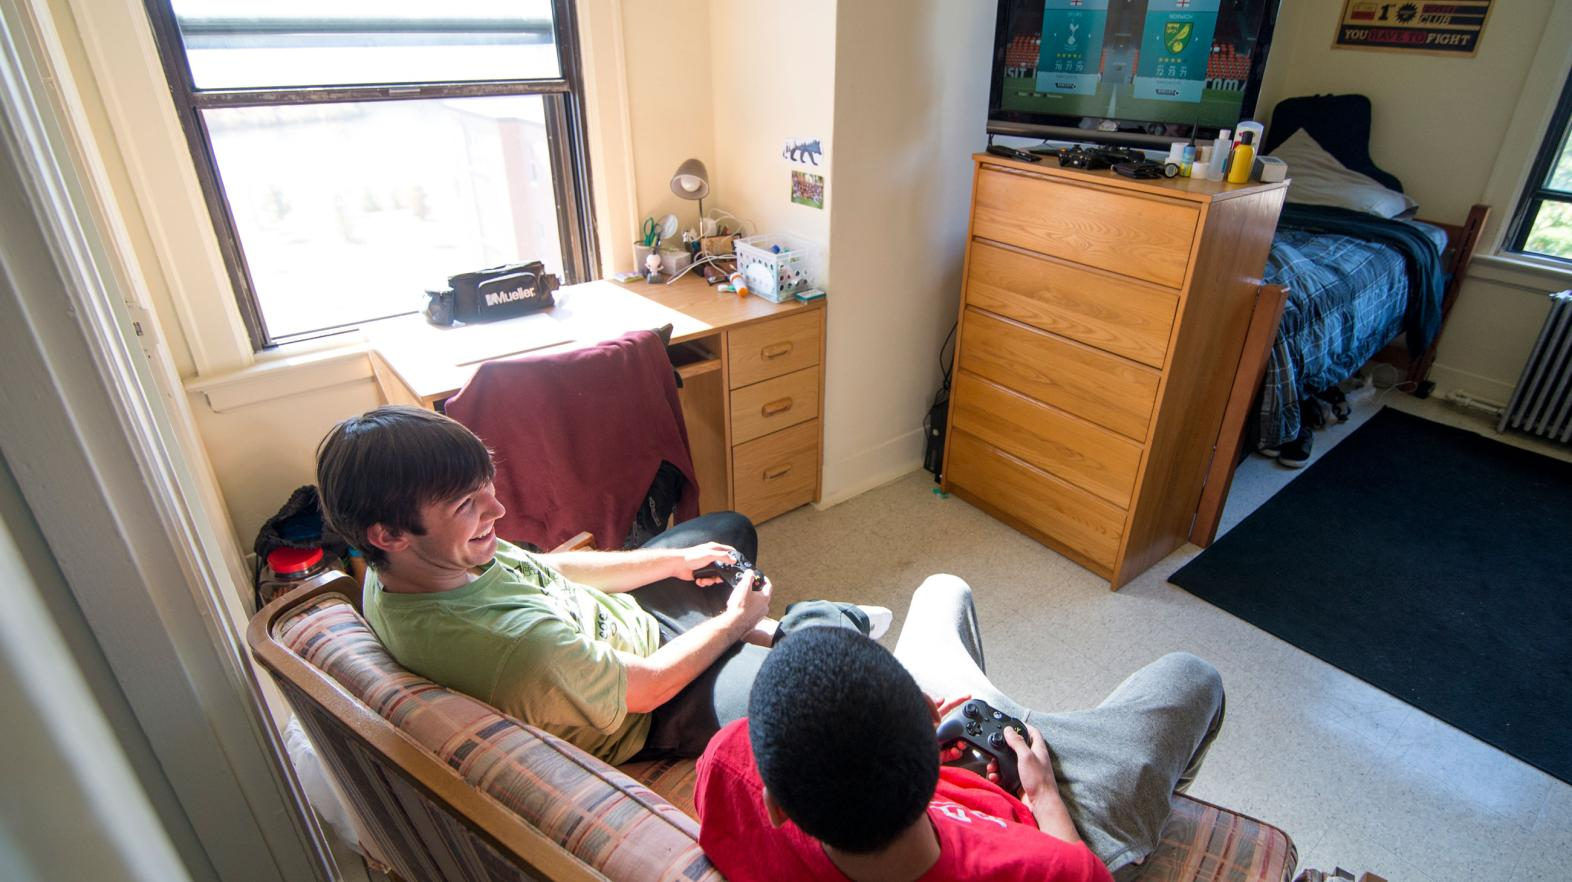 Two students laugh with eachother while playing video games in their residence hall room.